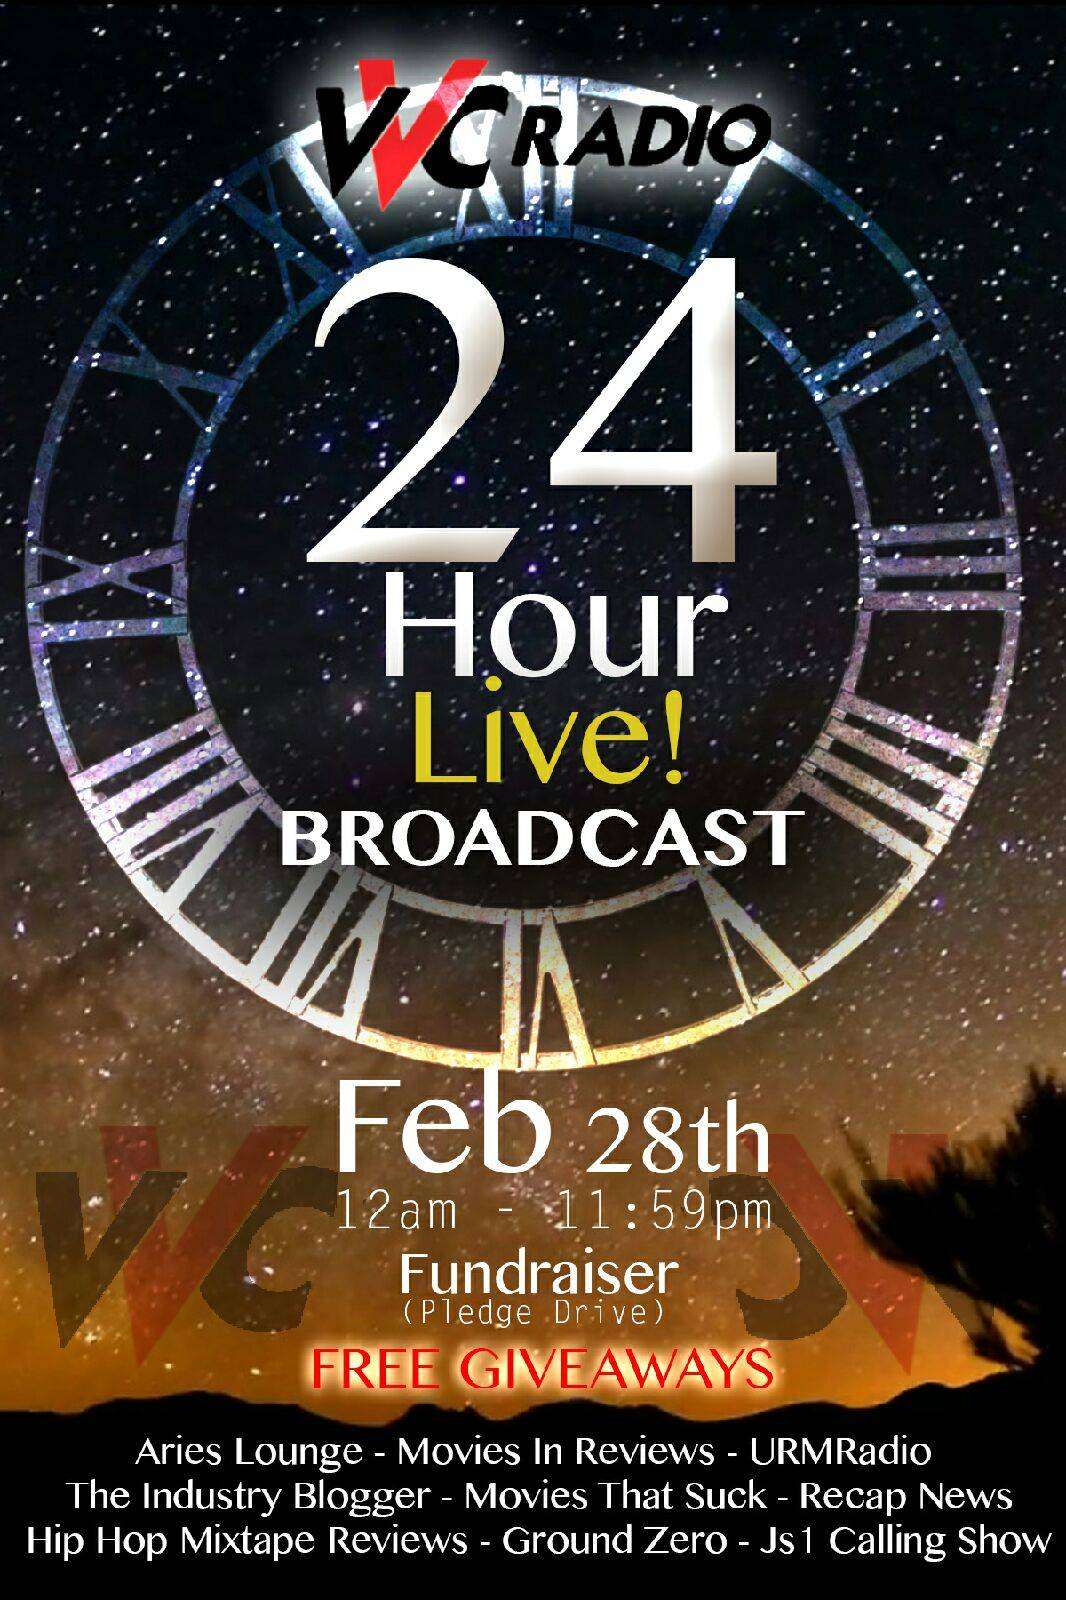 [Don't Miss This!] Tune In To VVC Radio's 24 Hour Broadcast  This Saturday!